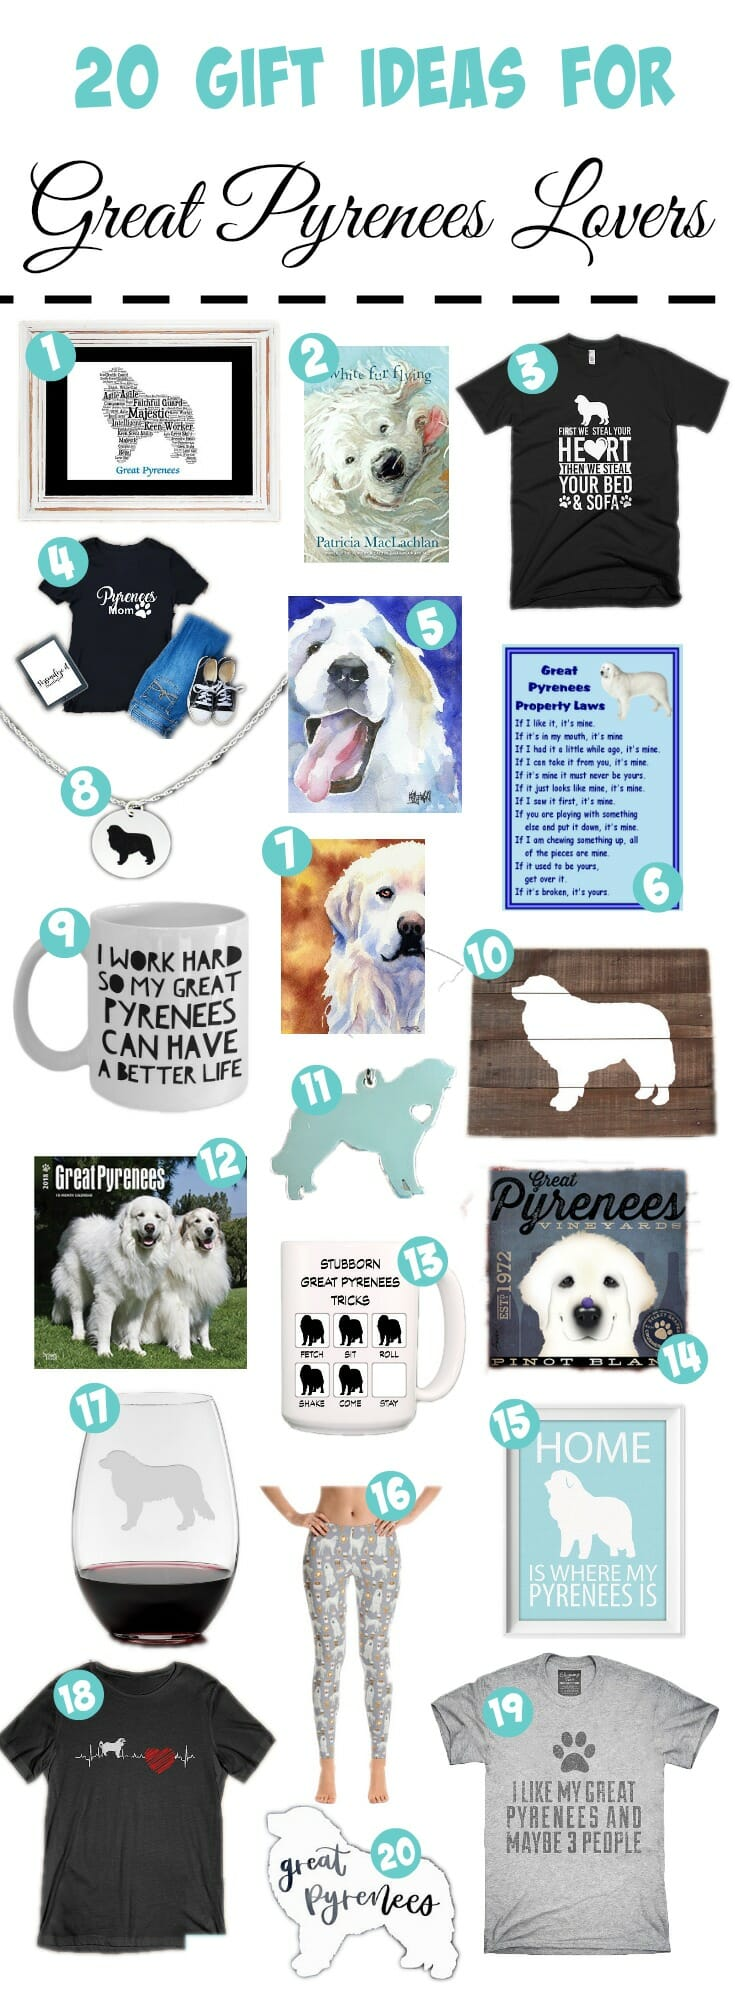 Still shopping for the Great Pyrenees lover on your list? Here are our top picks for the Great Pyrenees lover holiday gift guide.